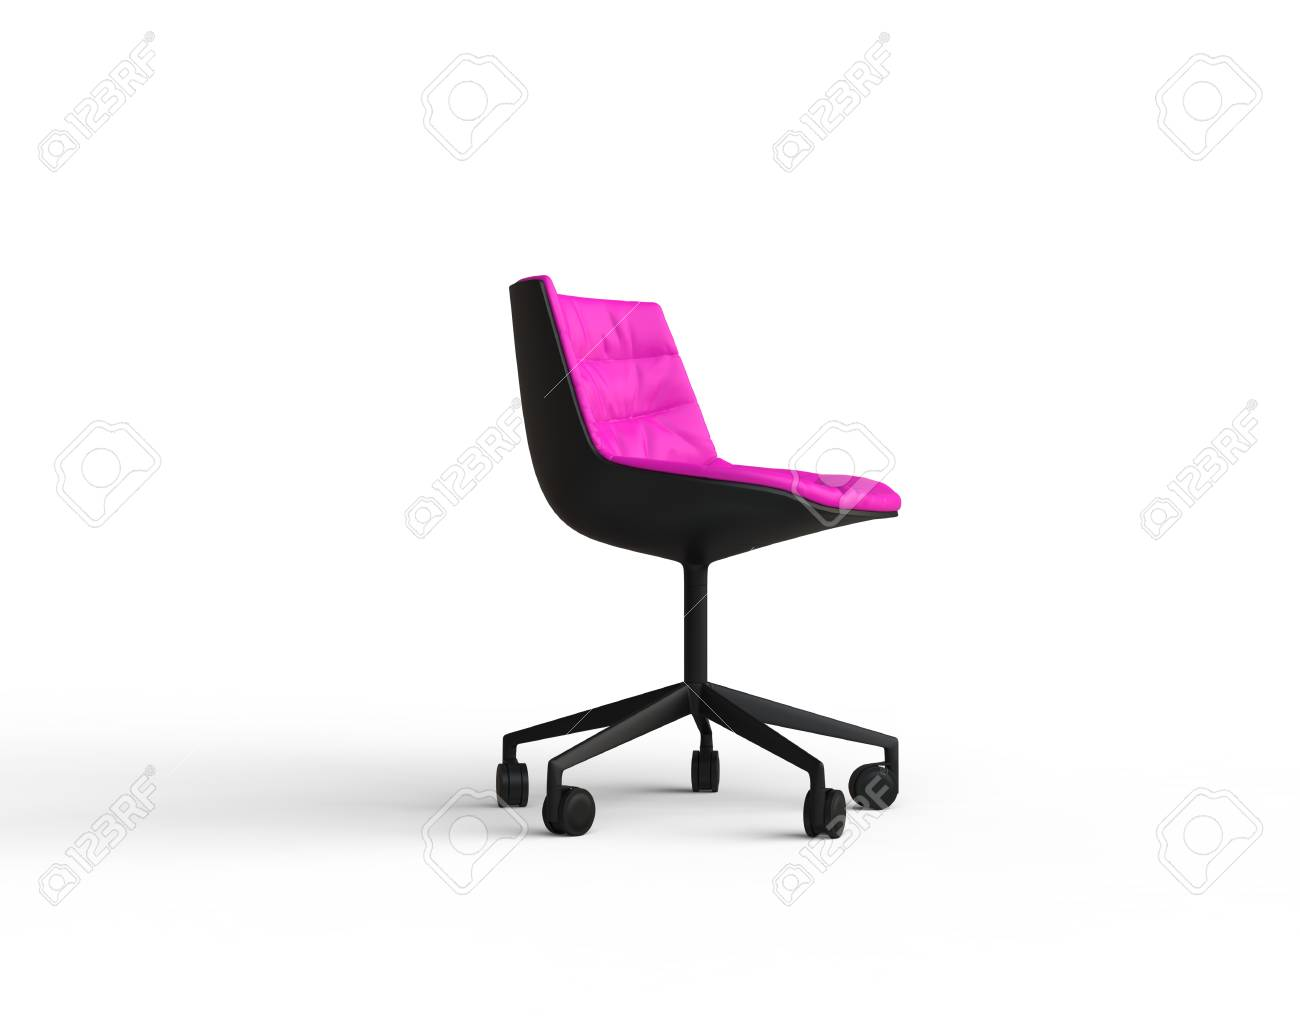 Pink Office Chairs Pink Modern Office Chair On White Background Side View